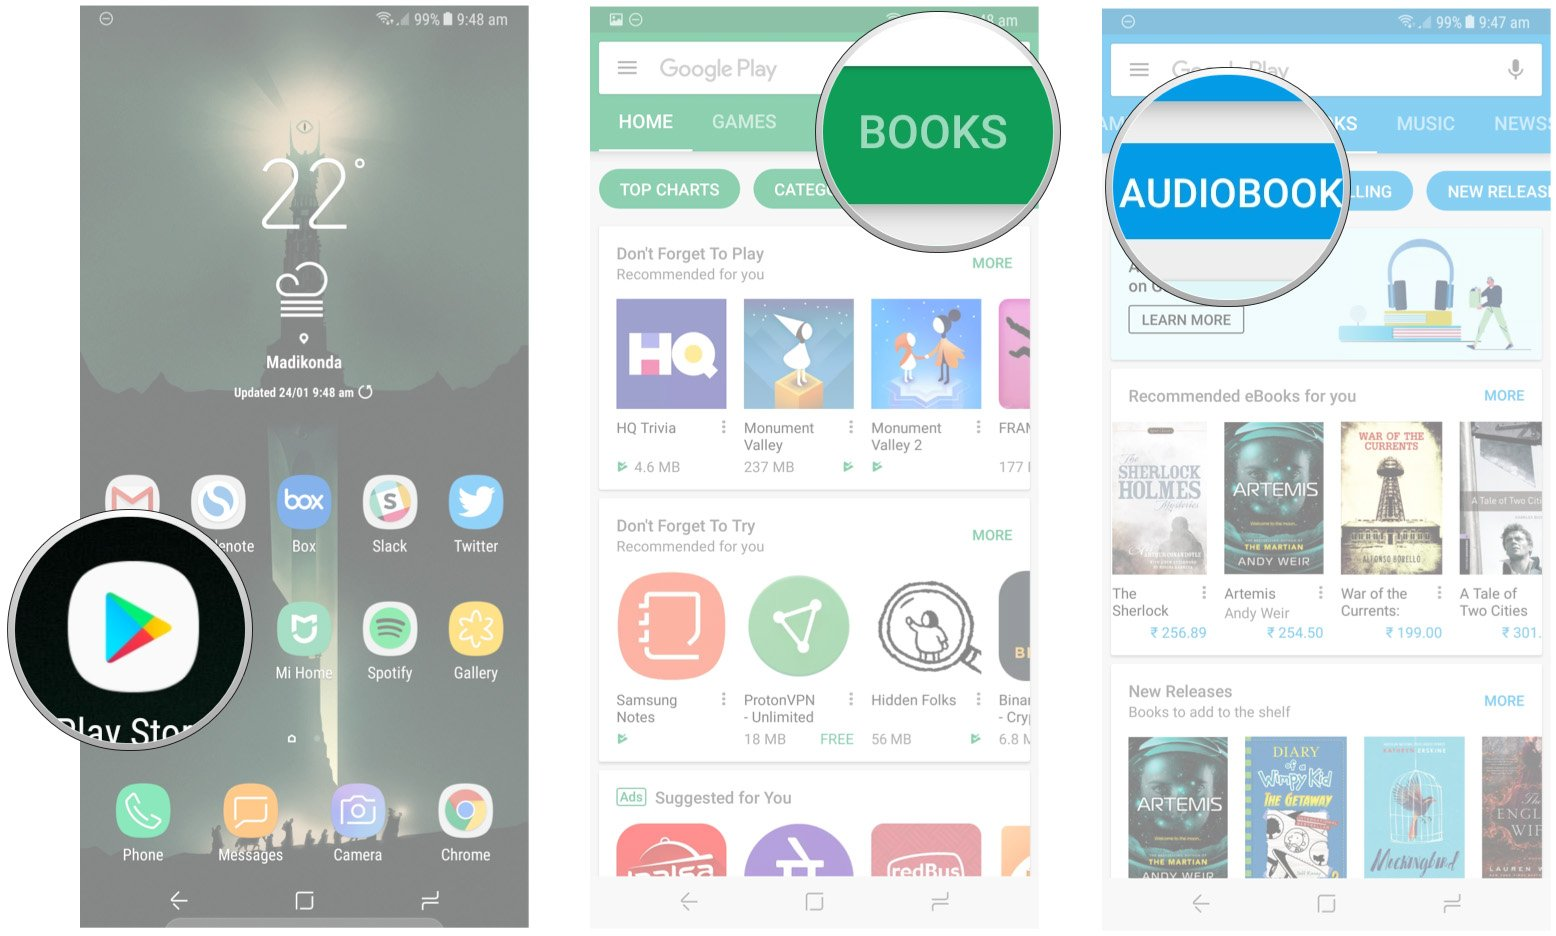 Descargar Libros De Play Books Gratis How To Download Audiobooks From Google Play Android Central